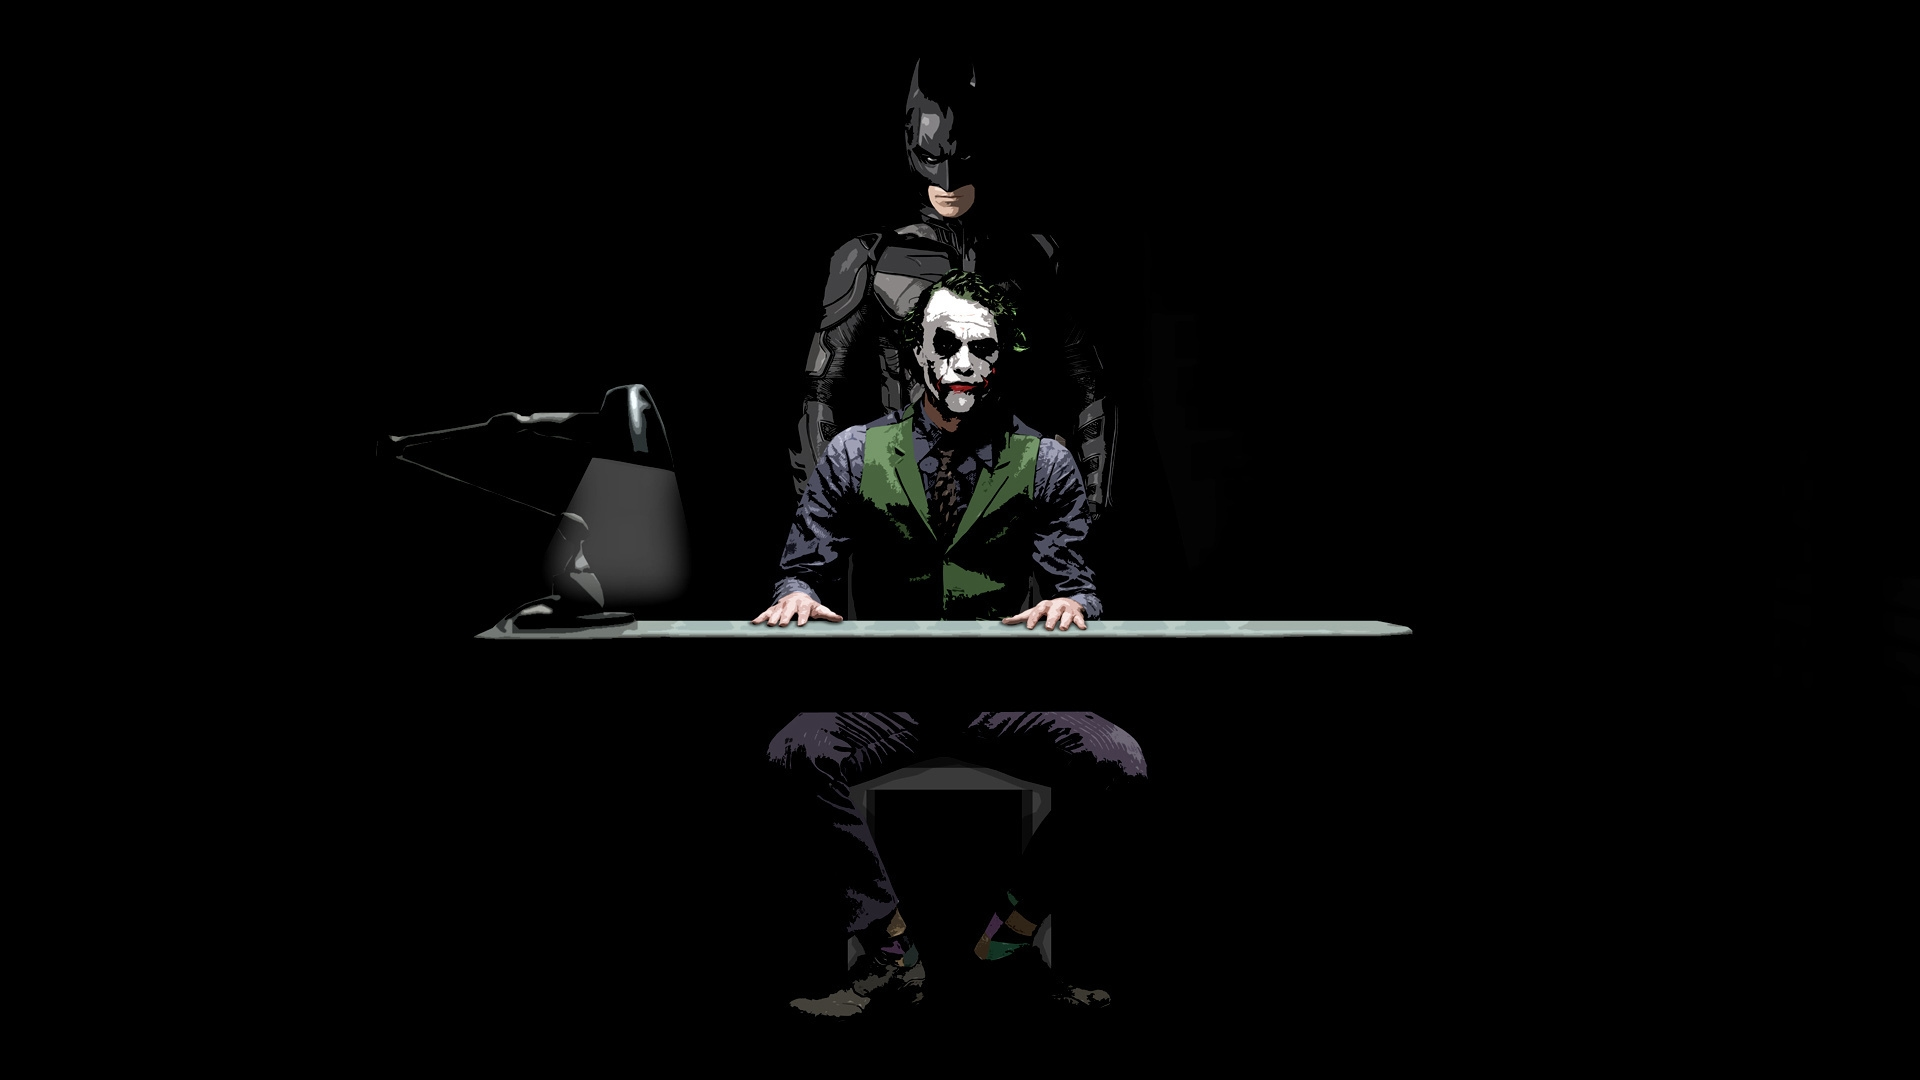 Batman And Joker Sketch 3D Wallpaper HQ Wallpapers Download 100 1920x1080